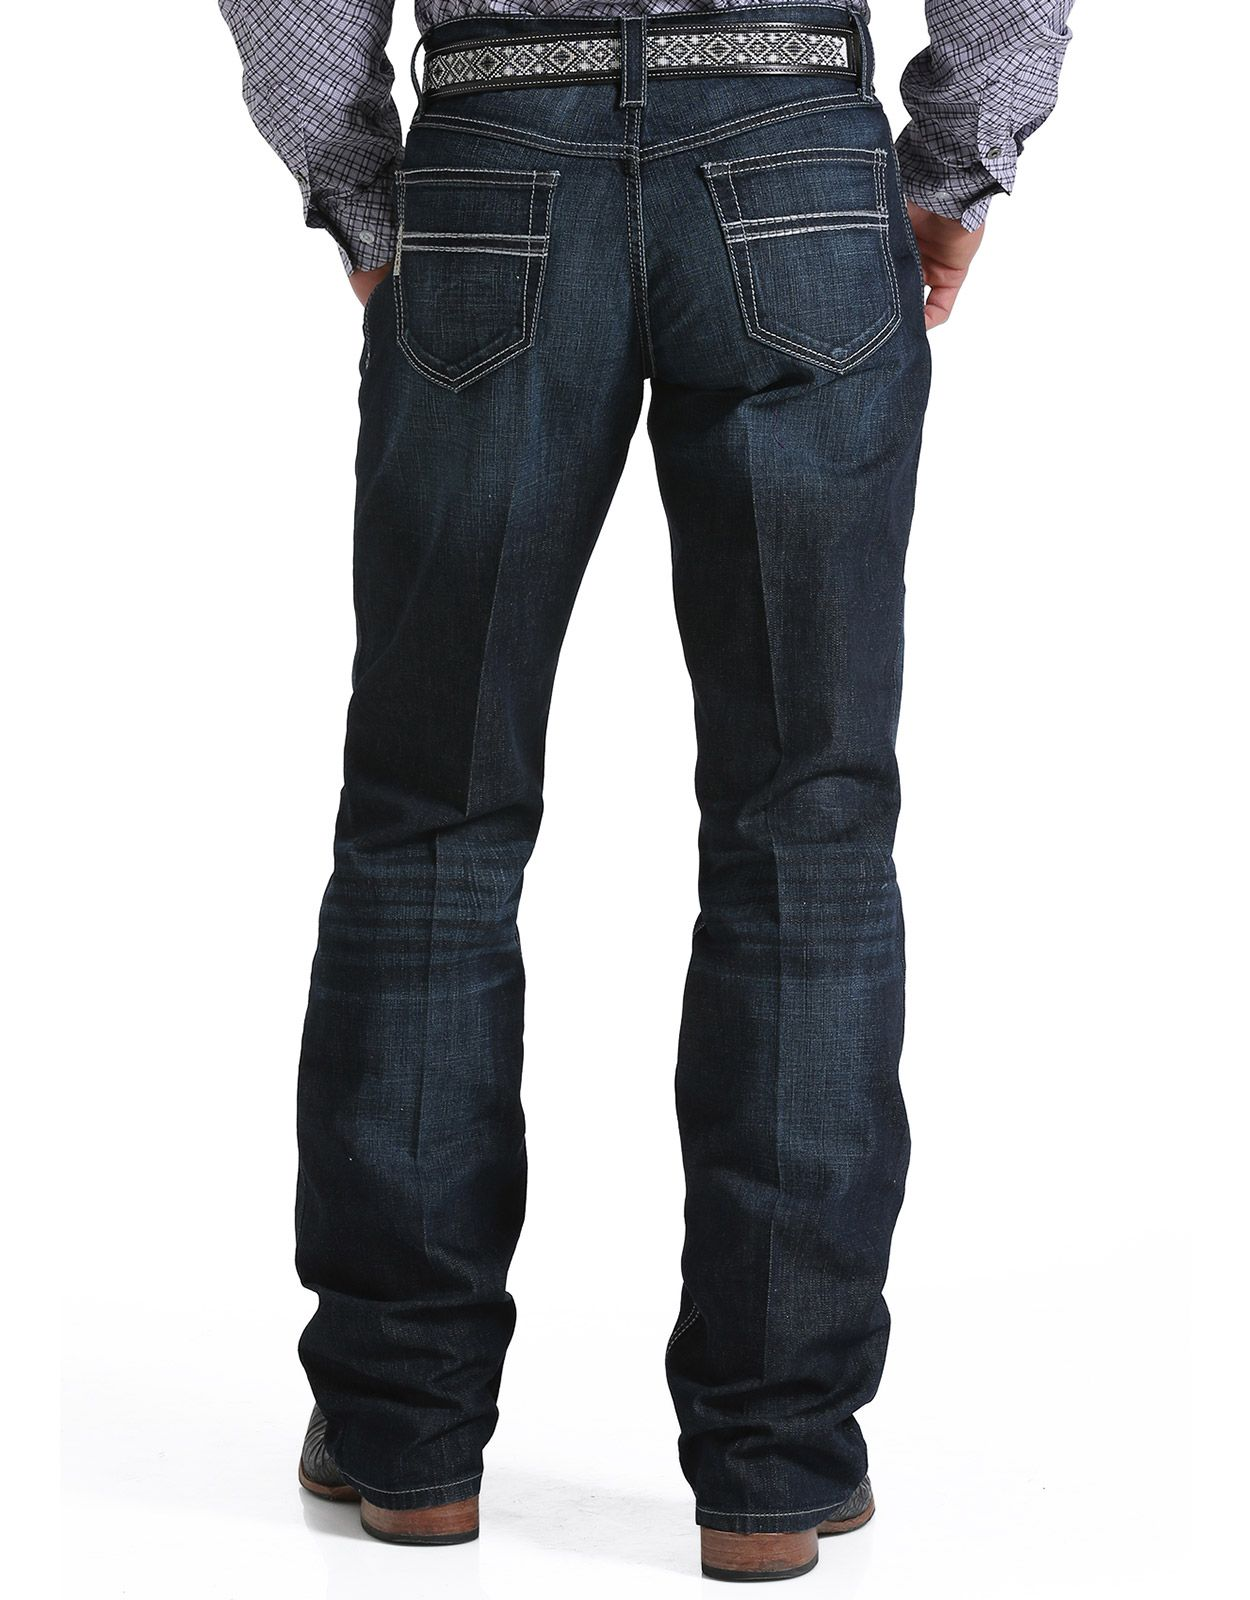 Cinch Men's Performance Denim Carter 2.4 Mid Rise Relaxed Fit Boot Cut Jeans - Rinse